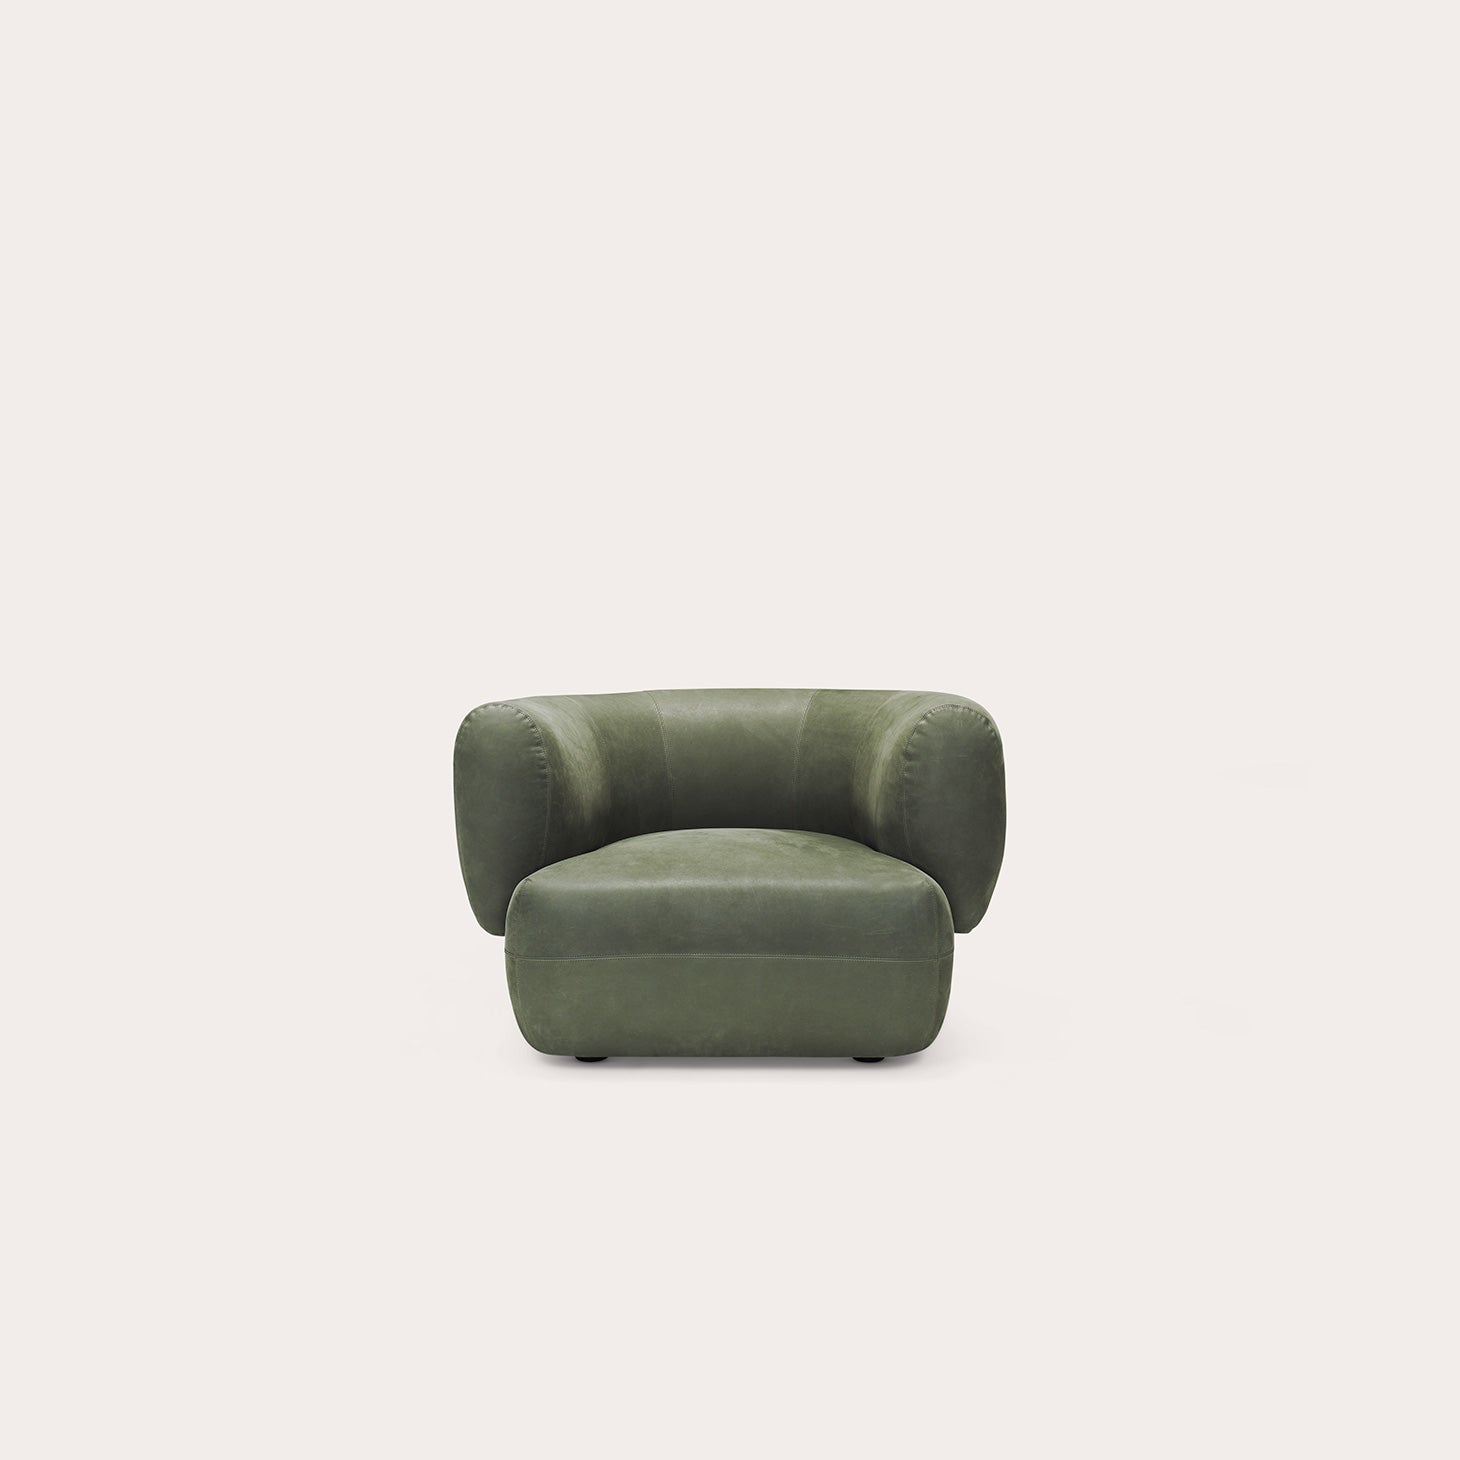 Arp Armchair Seating Sebastian Herkner Designer Furniture Sku: 247-240-10355